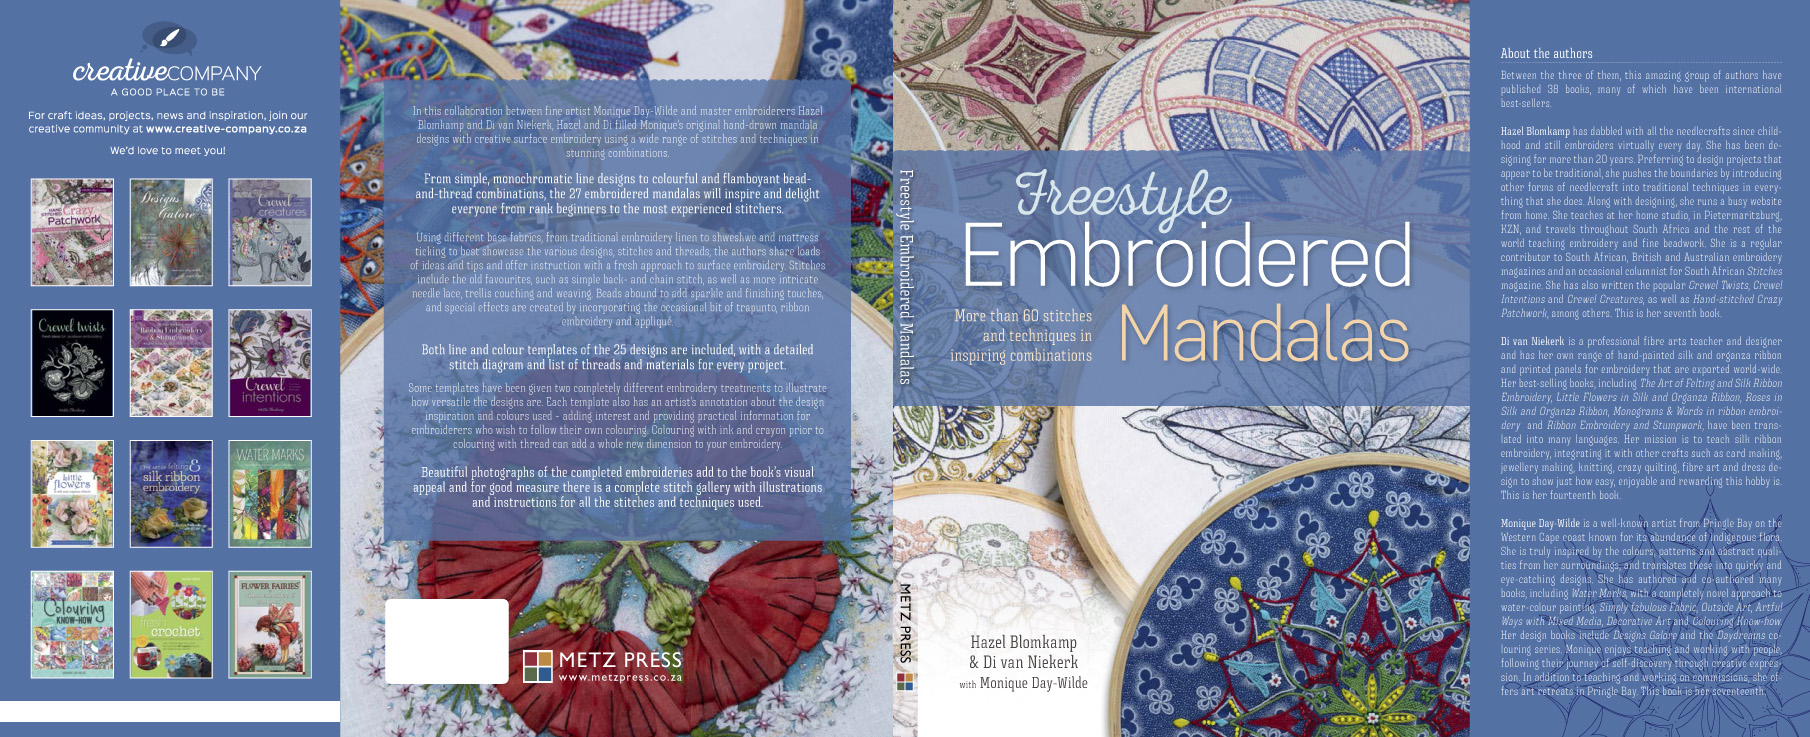 Freestyle-Embroidered-Mandalas